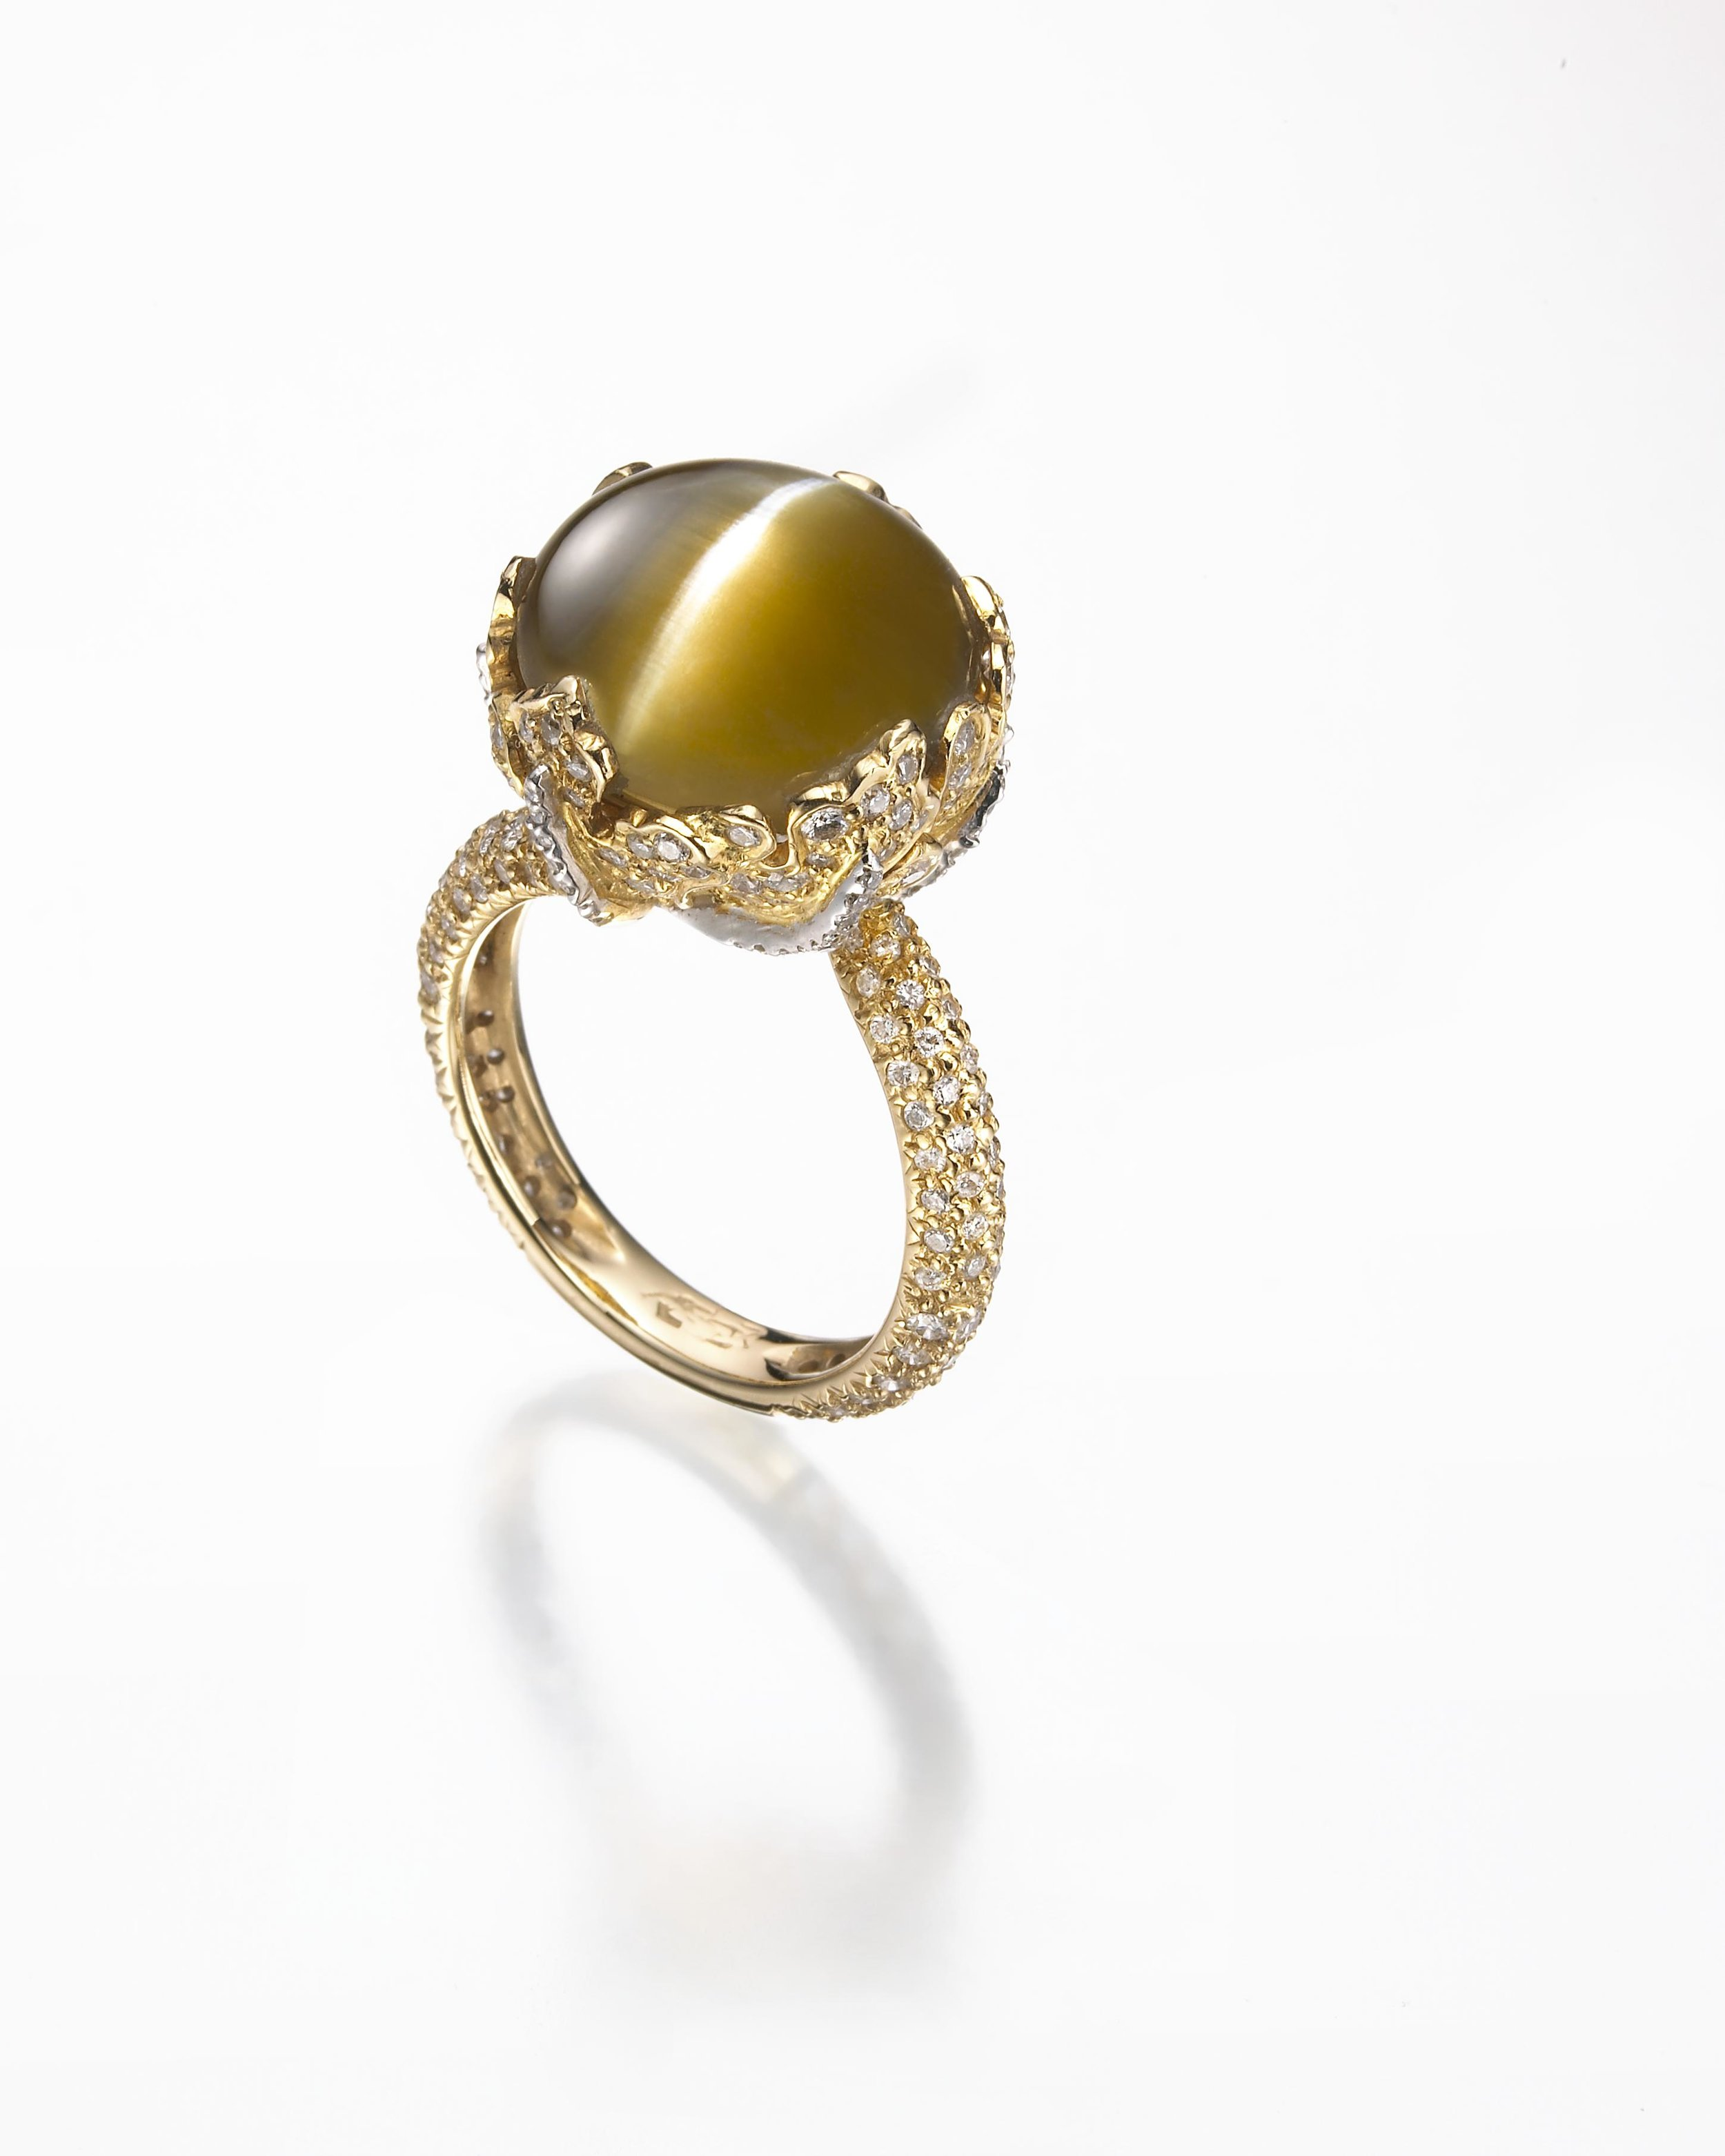 CAT'S EYE AND DIAMOND RING